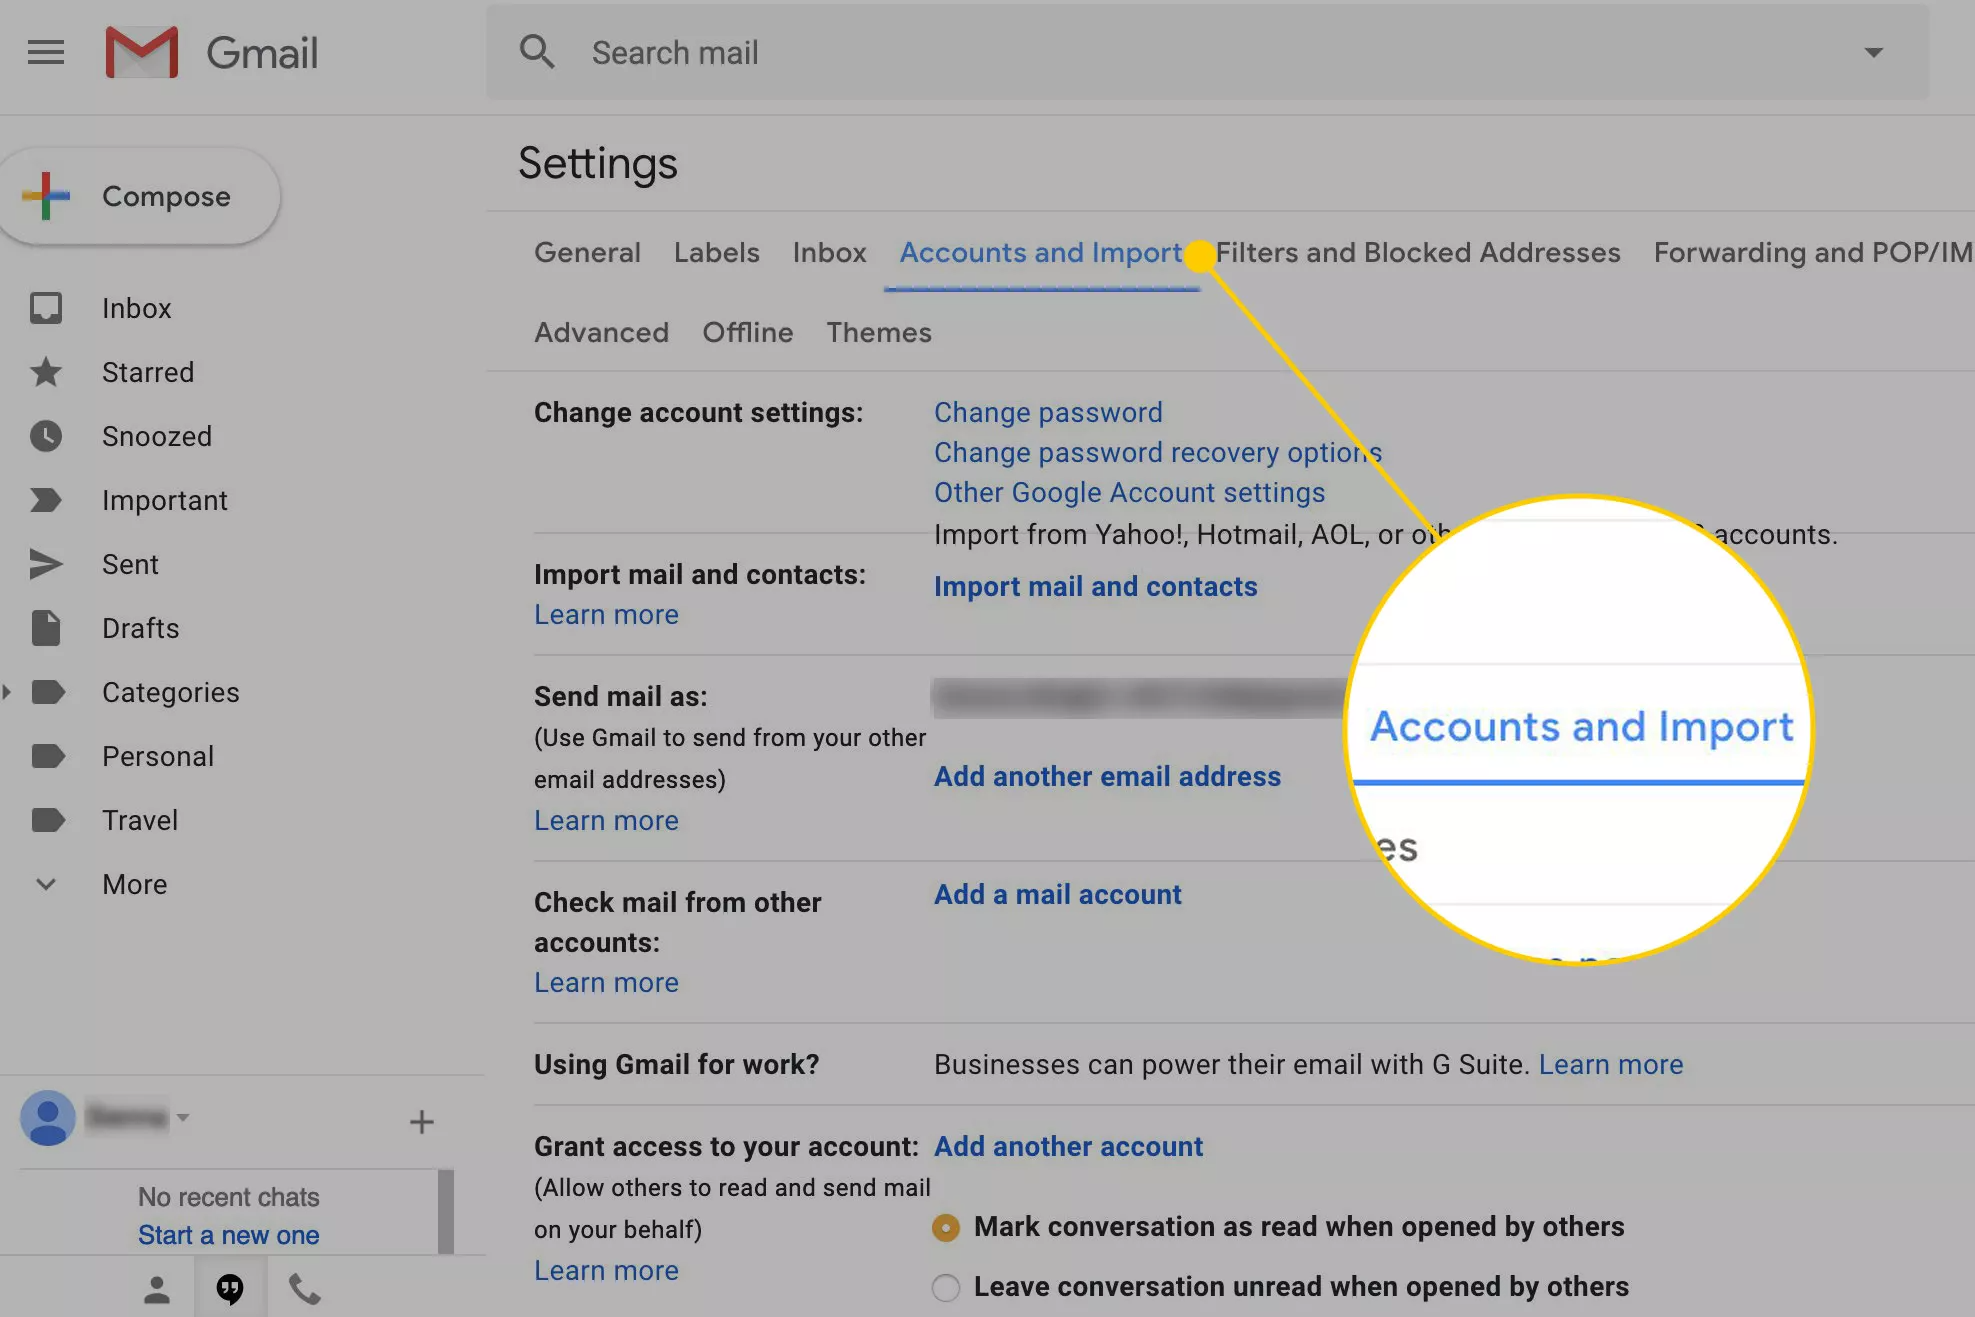 Gmail settings screen with the Accounts and Import menu highlighted